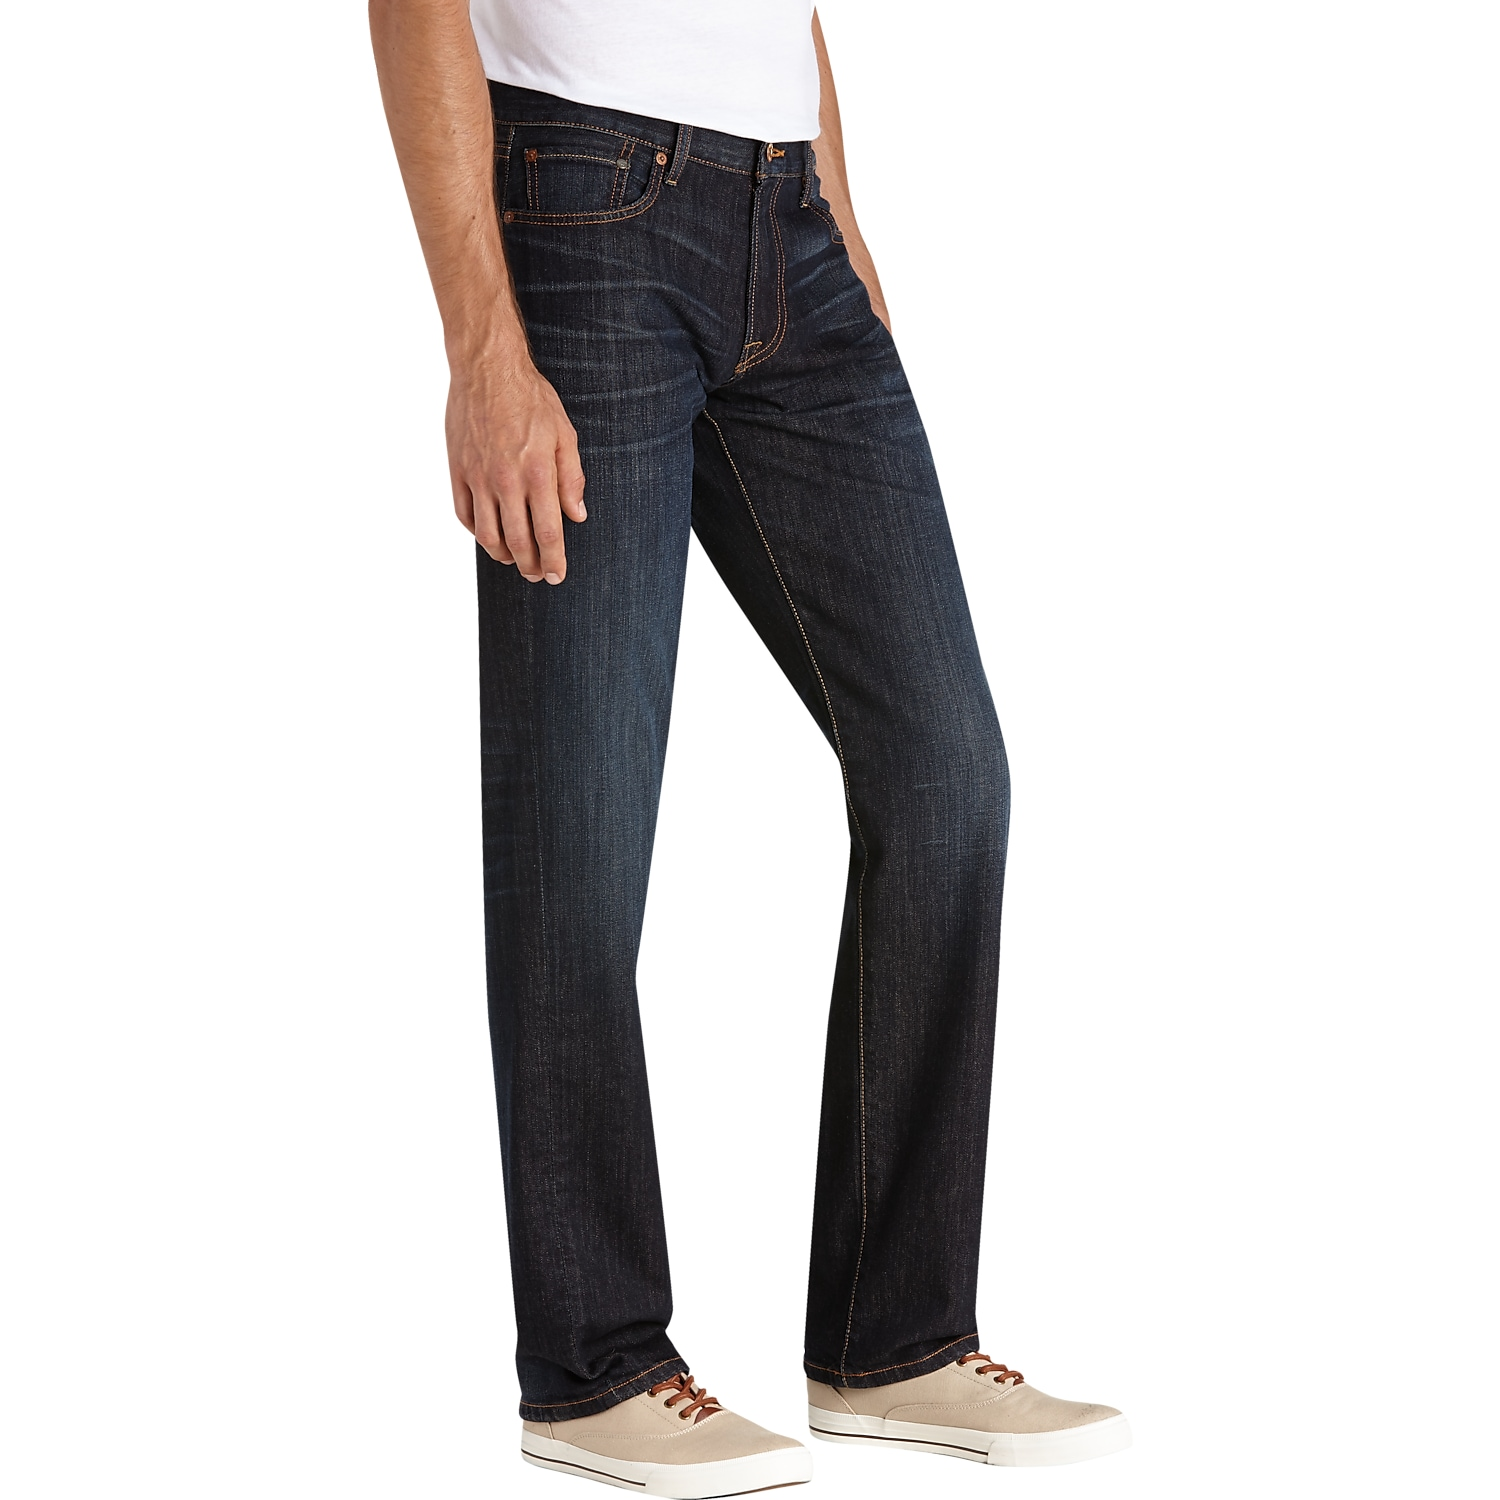 6e5a0dd922c1 Lucky Brand - Shop online   buy Lucky Brand men s clothing brand ...